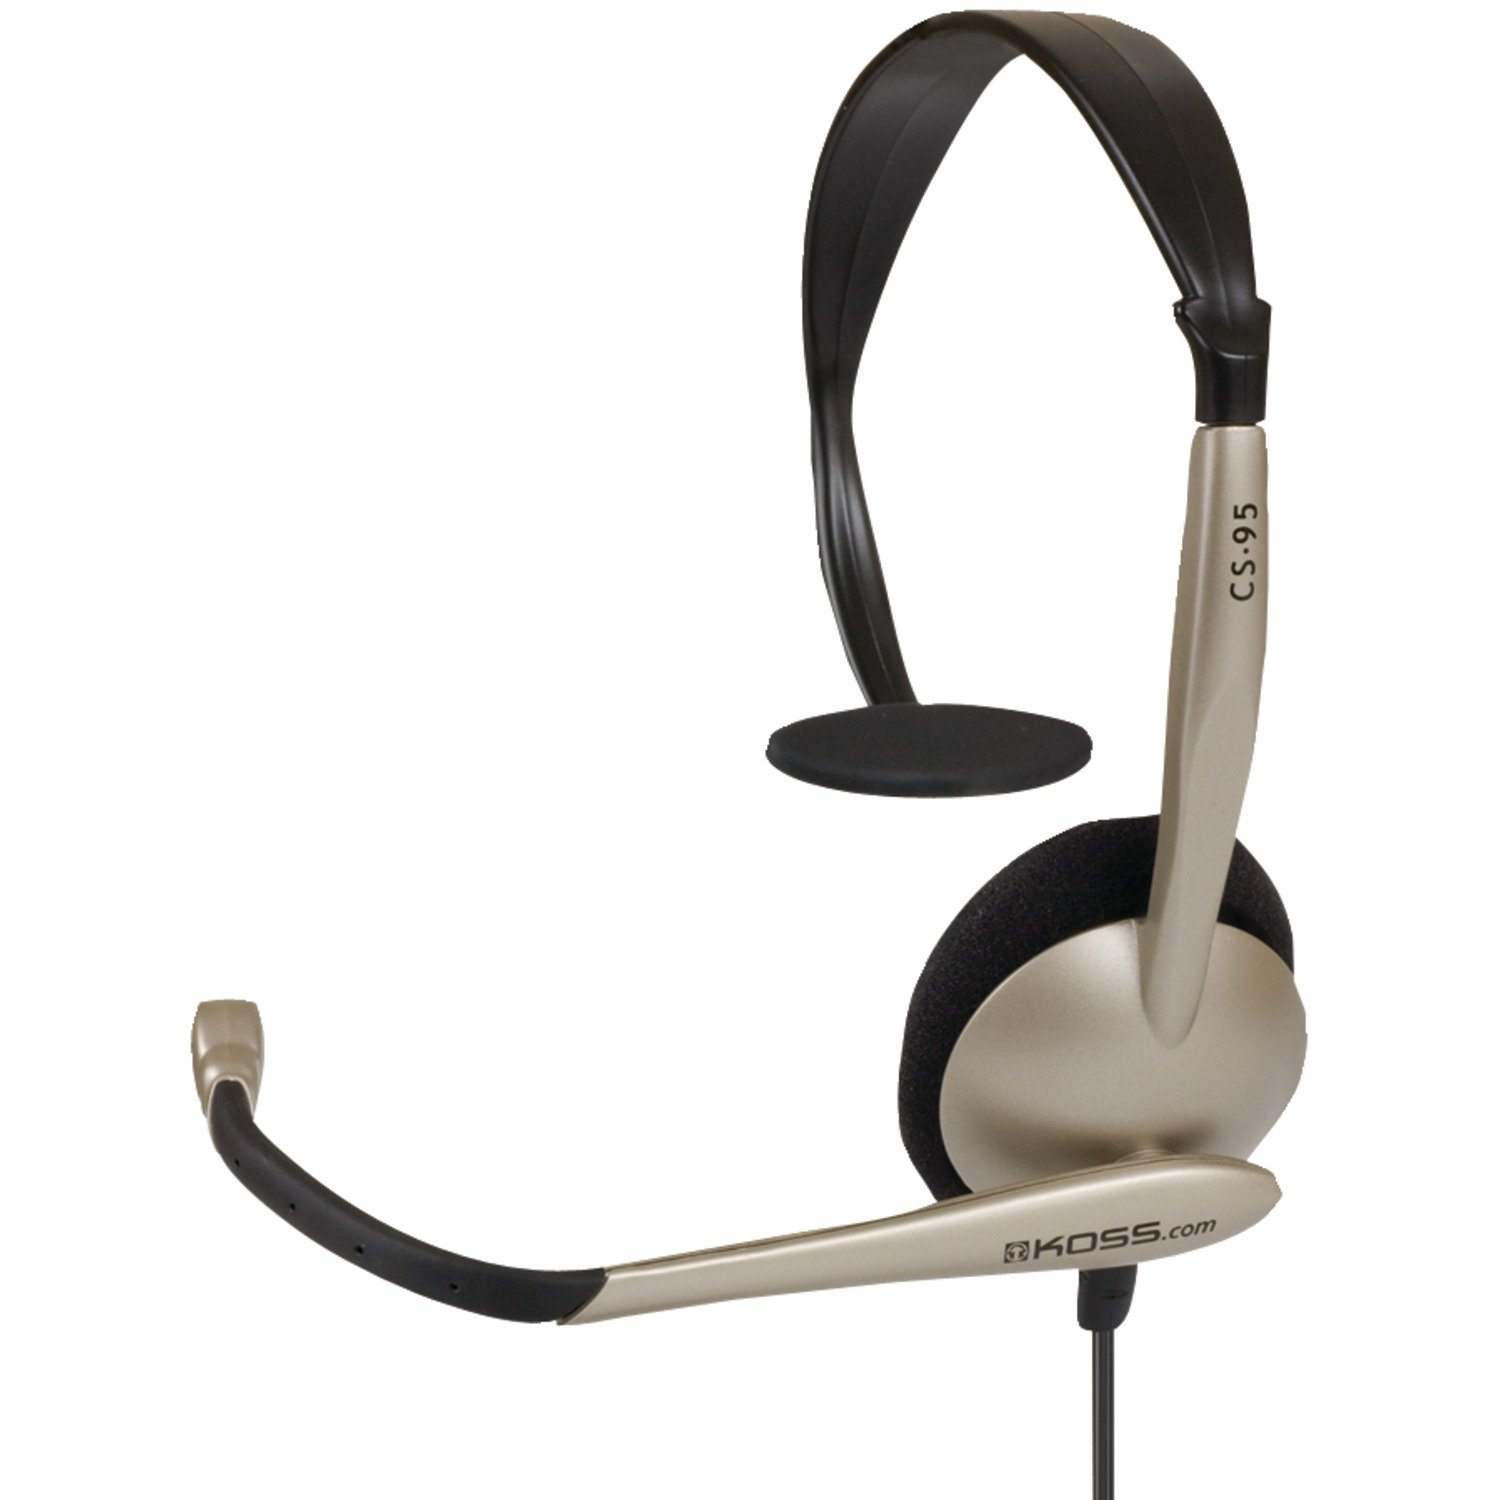 Koss Communications USB Headset with Microphone (CS95-USB)